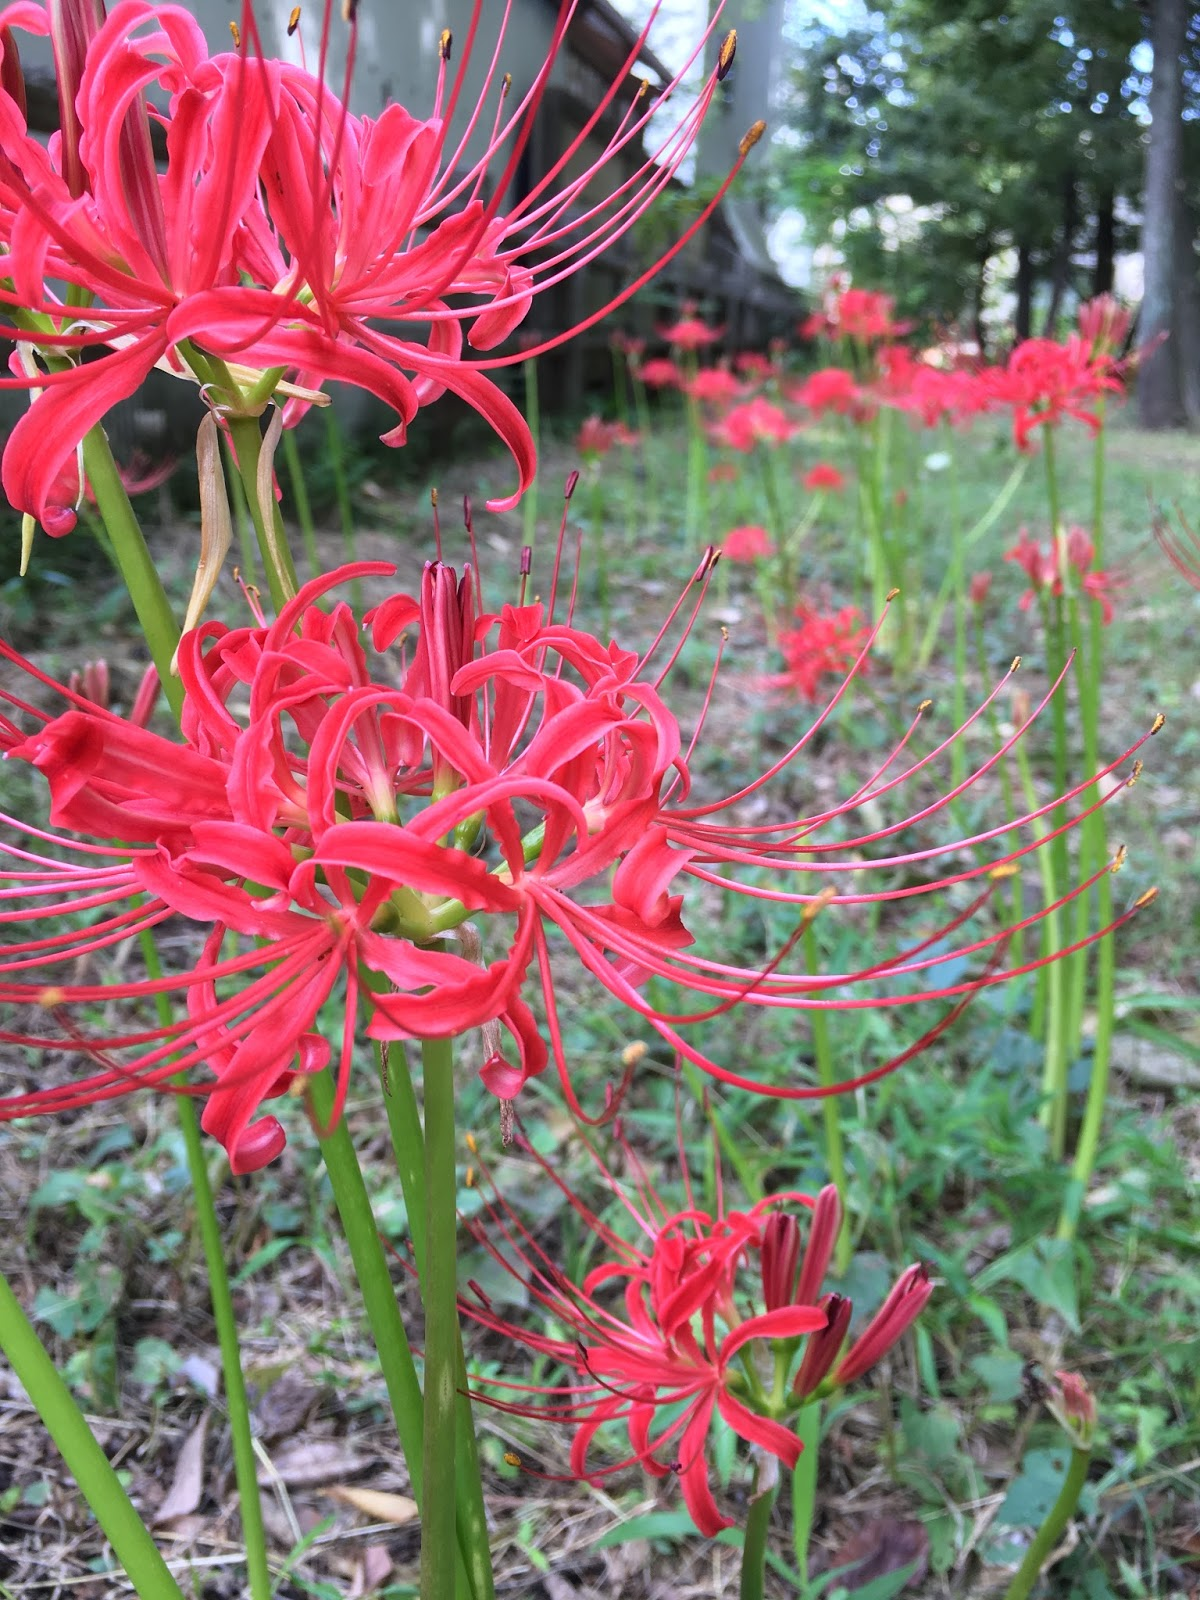 Red spider lily higanbana a symbol of autumnd death red spider lilies higanbana in bloom izmirmasajfo